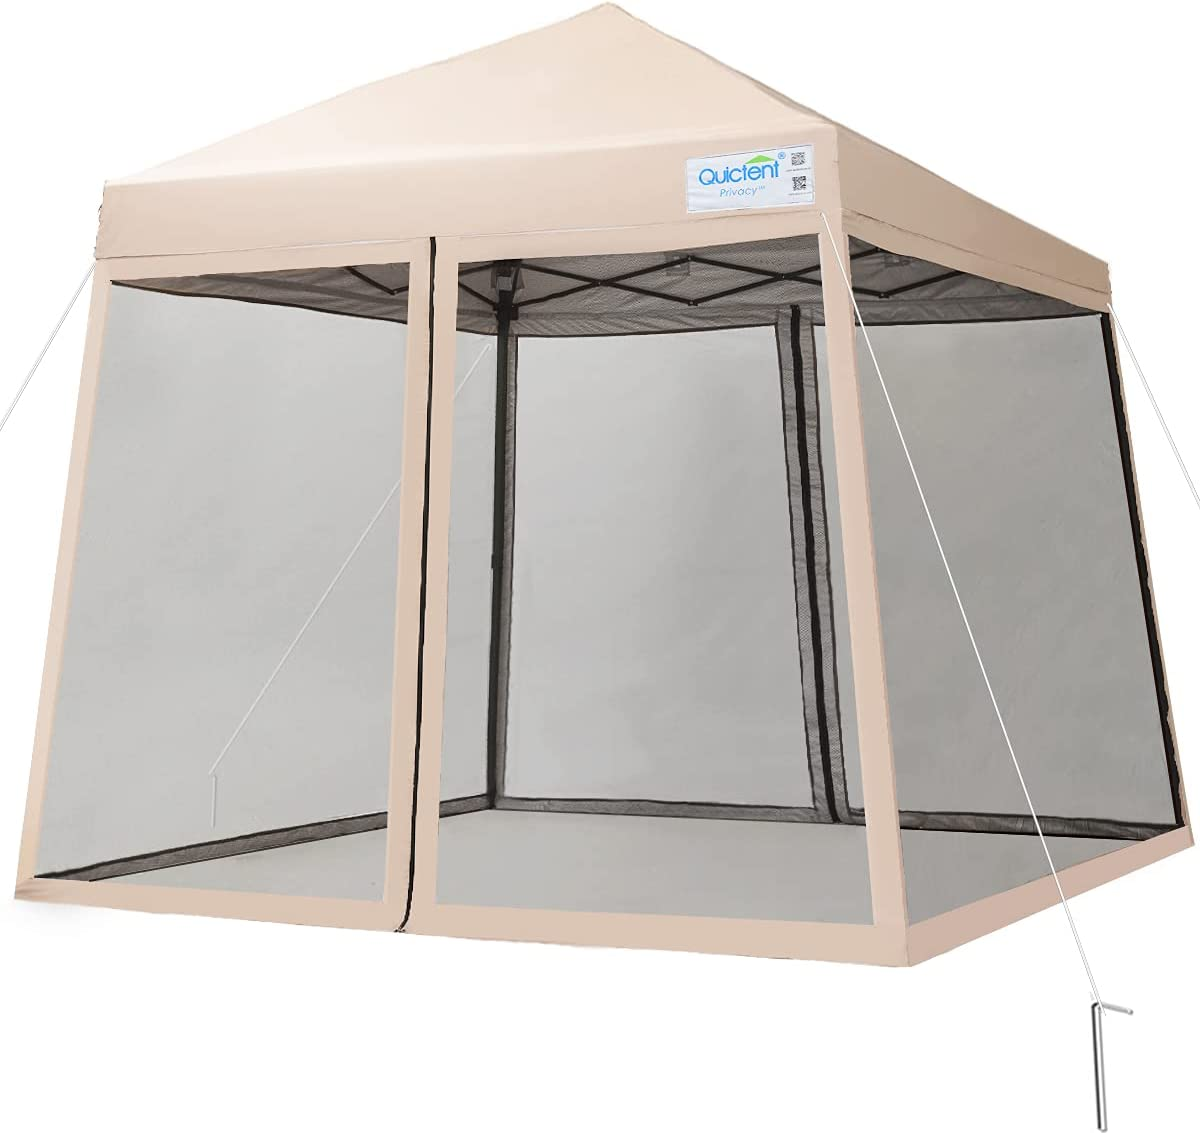 Quictent 9'x9' Attention brand Easy Set up Outdoor Canopy Mosqu Tent Max 76% OFF Pop with